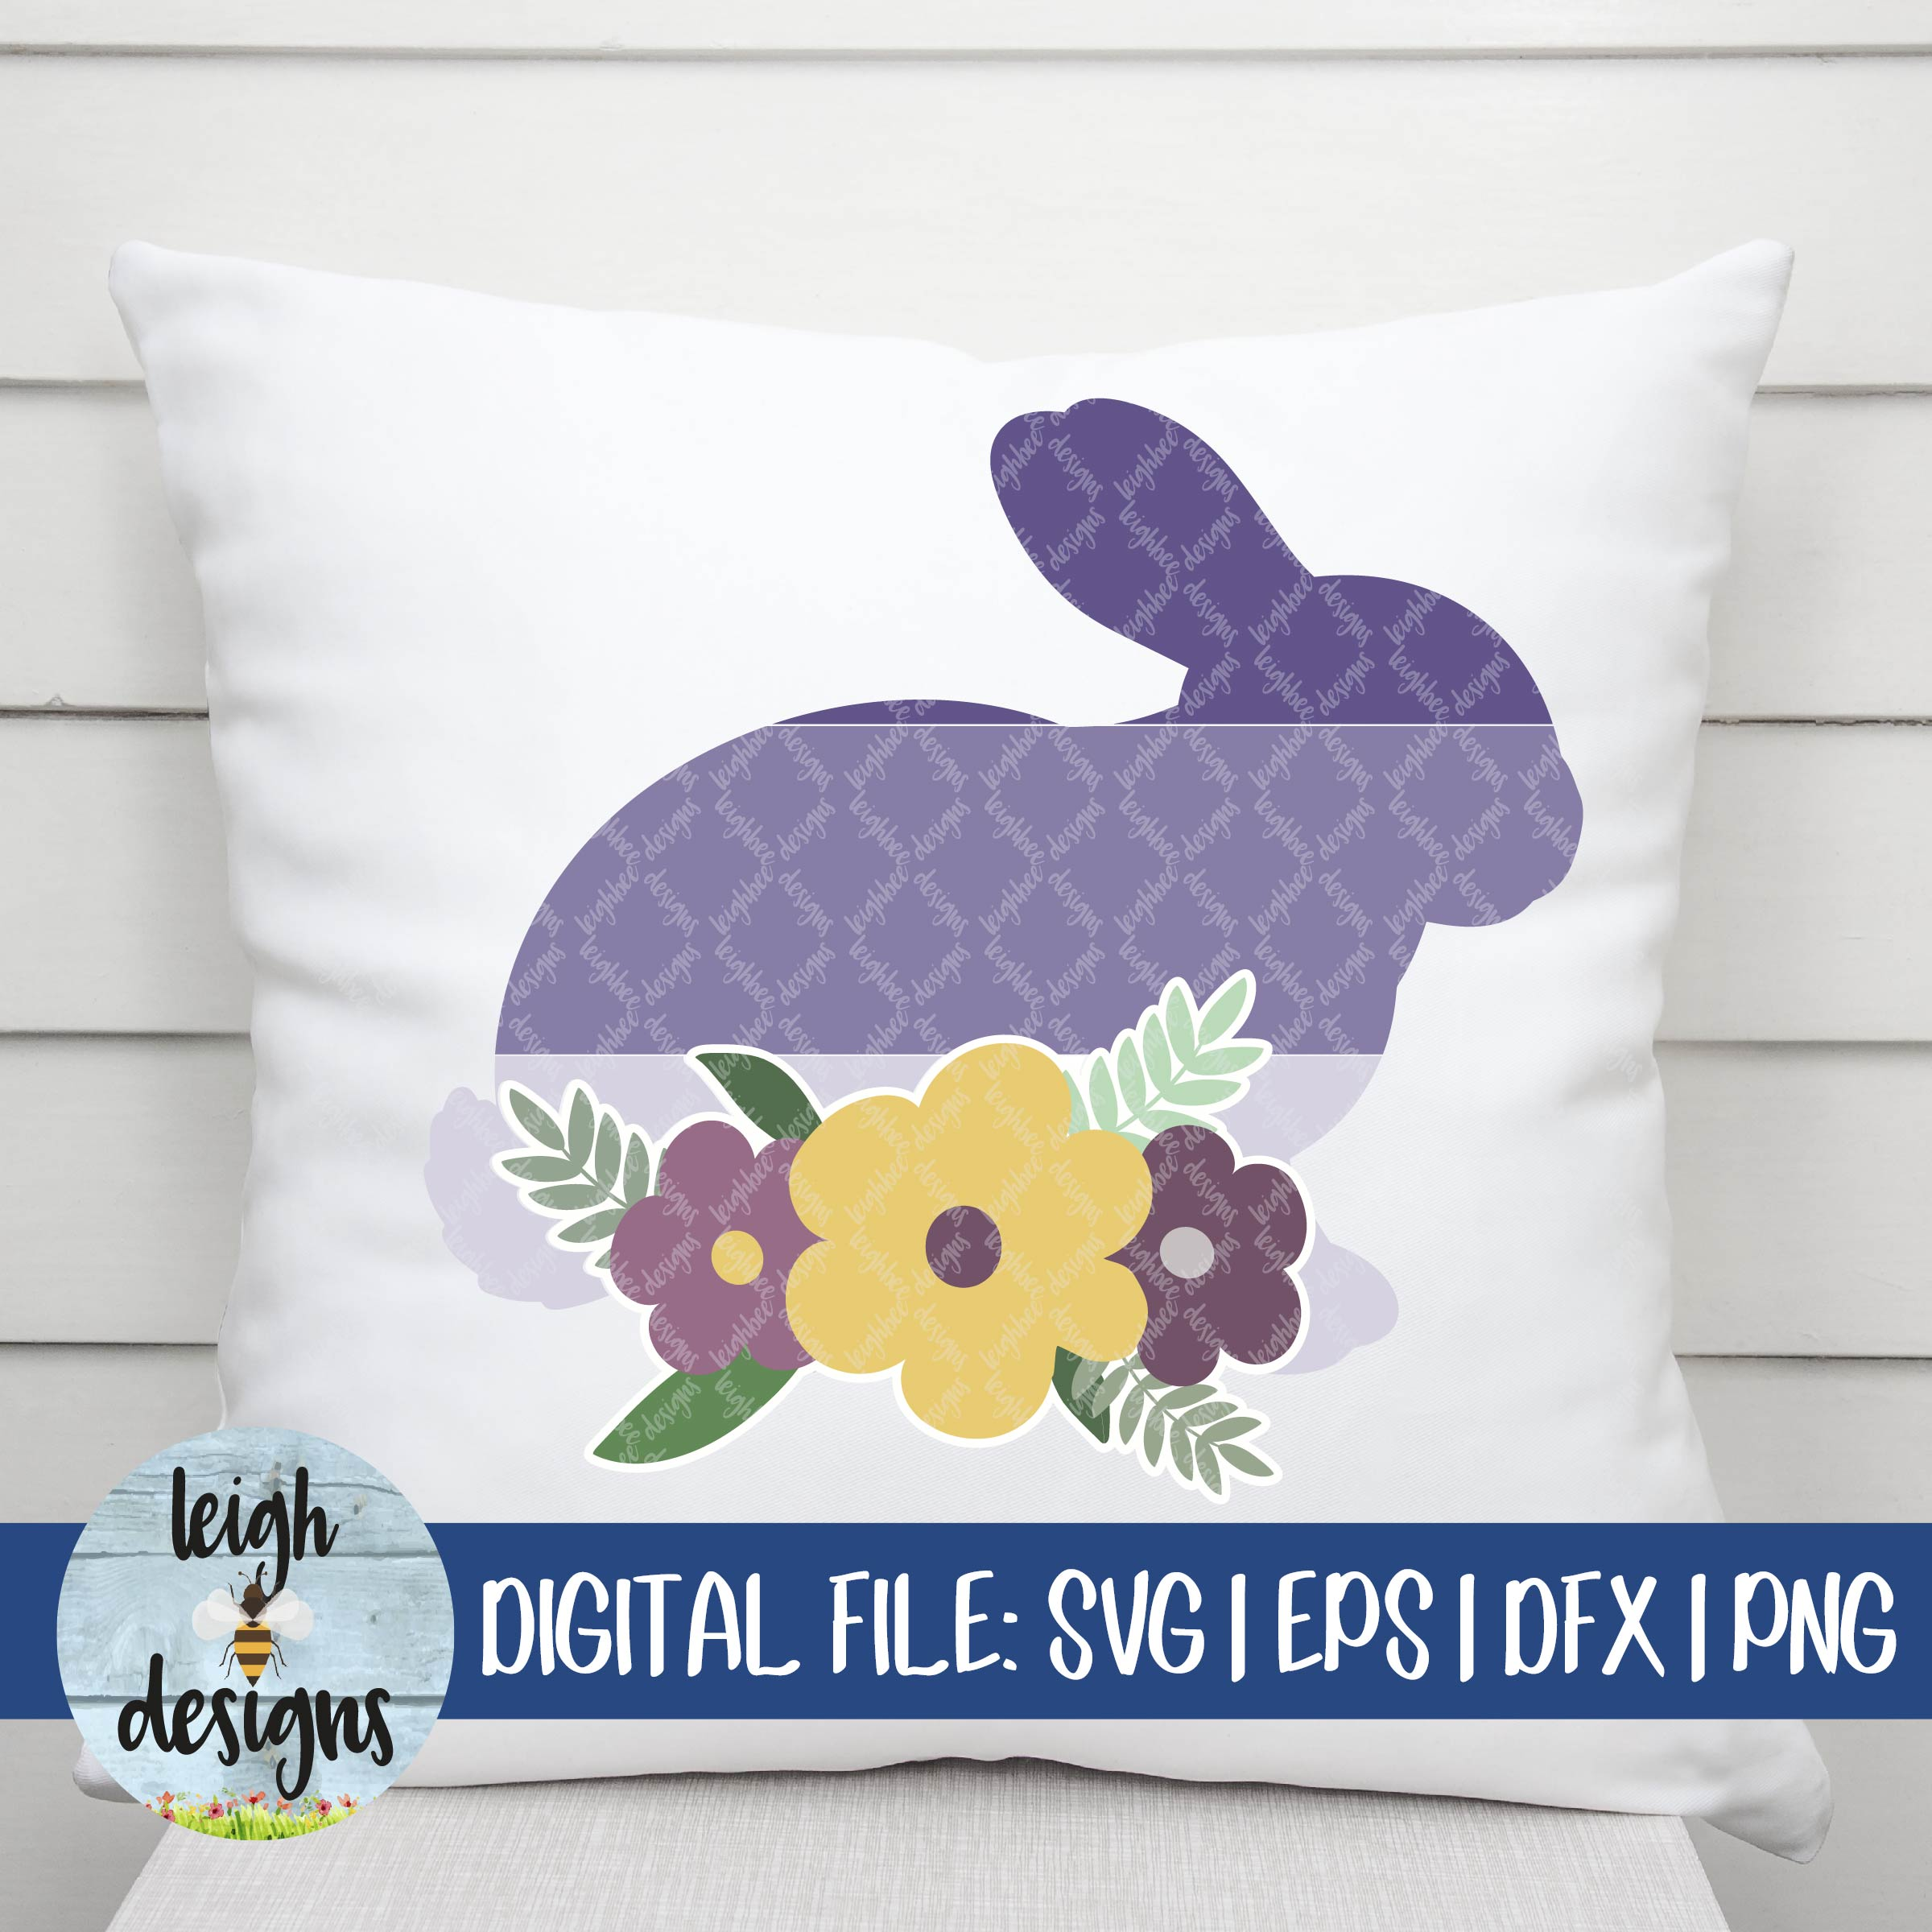 Ombre Bunny with Flower Swag SVG EPS DFX PNG Cut File example image 5